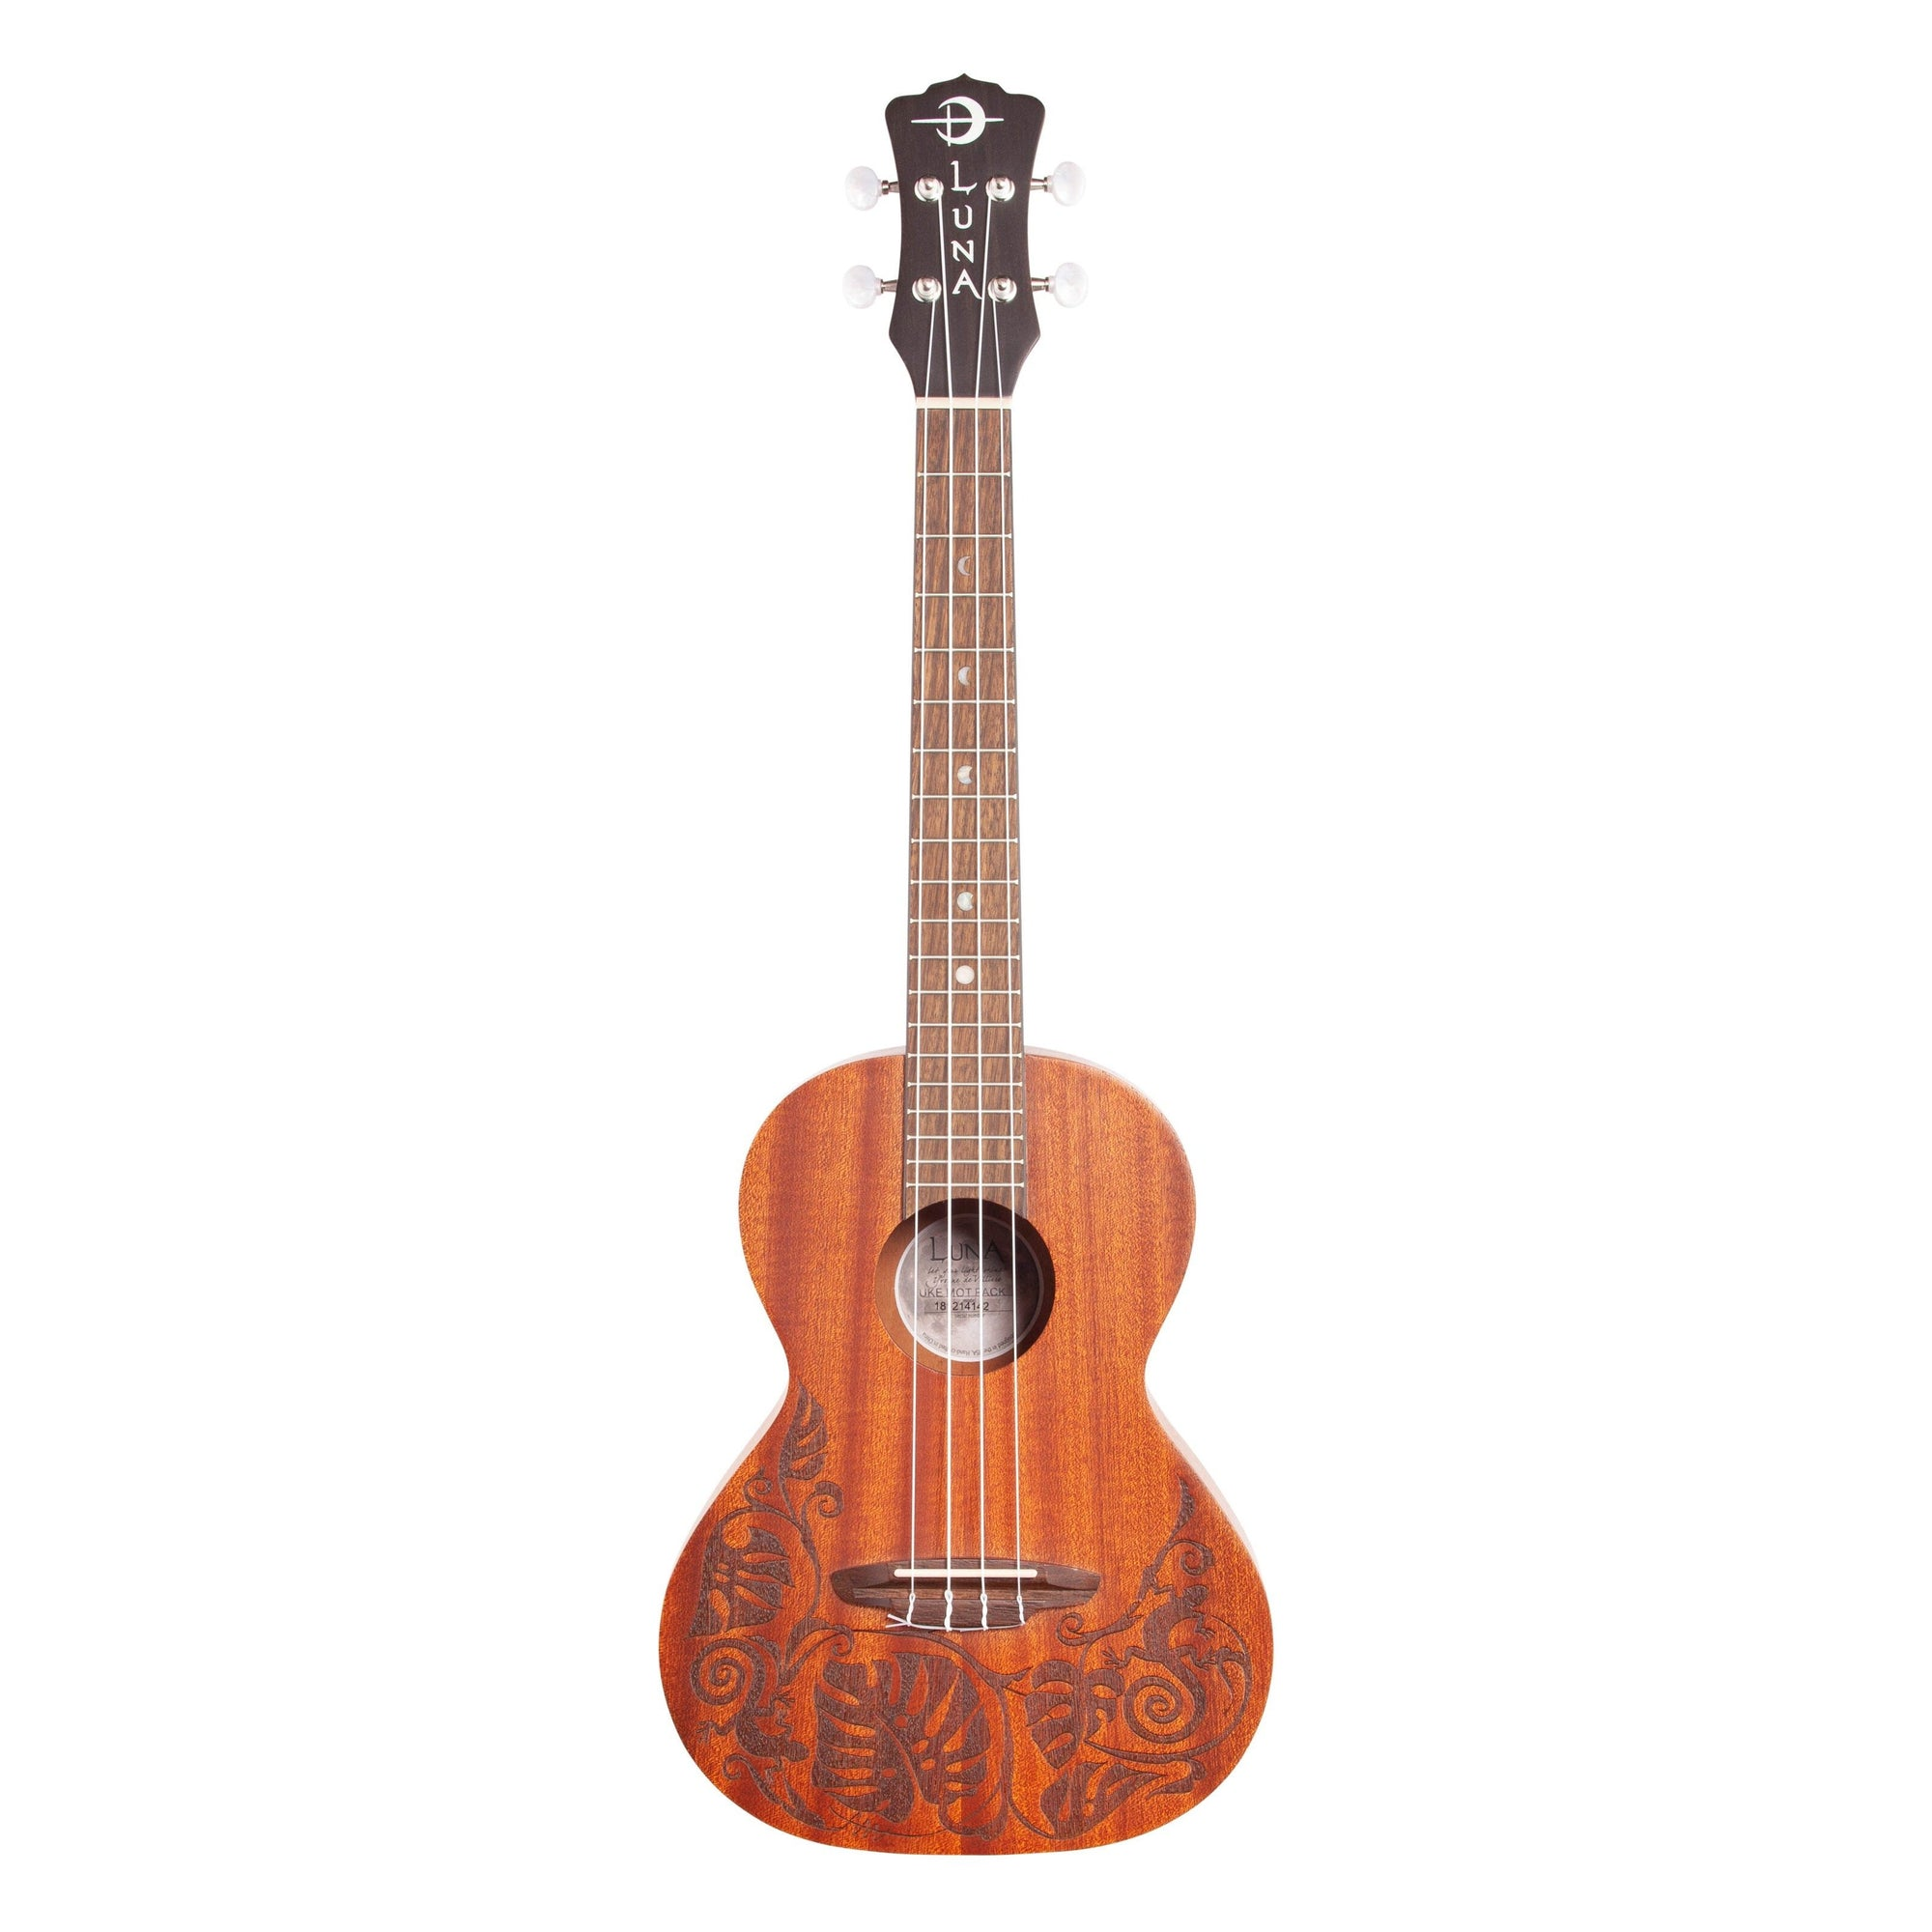 Luna Mahogany Tenor Ukulele Package (with Gig Bag)